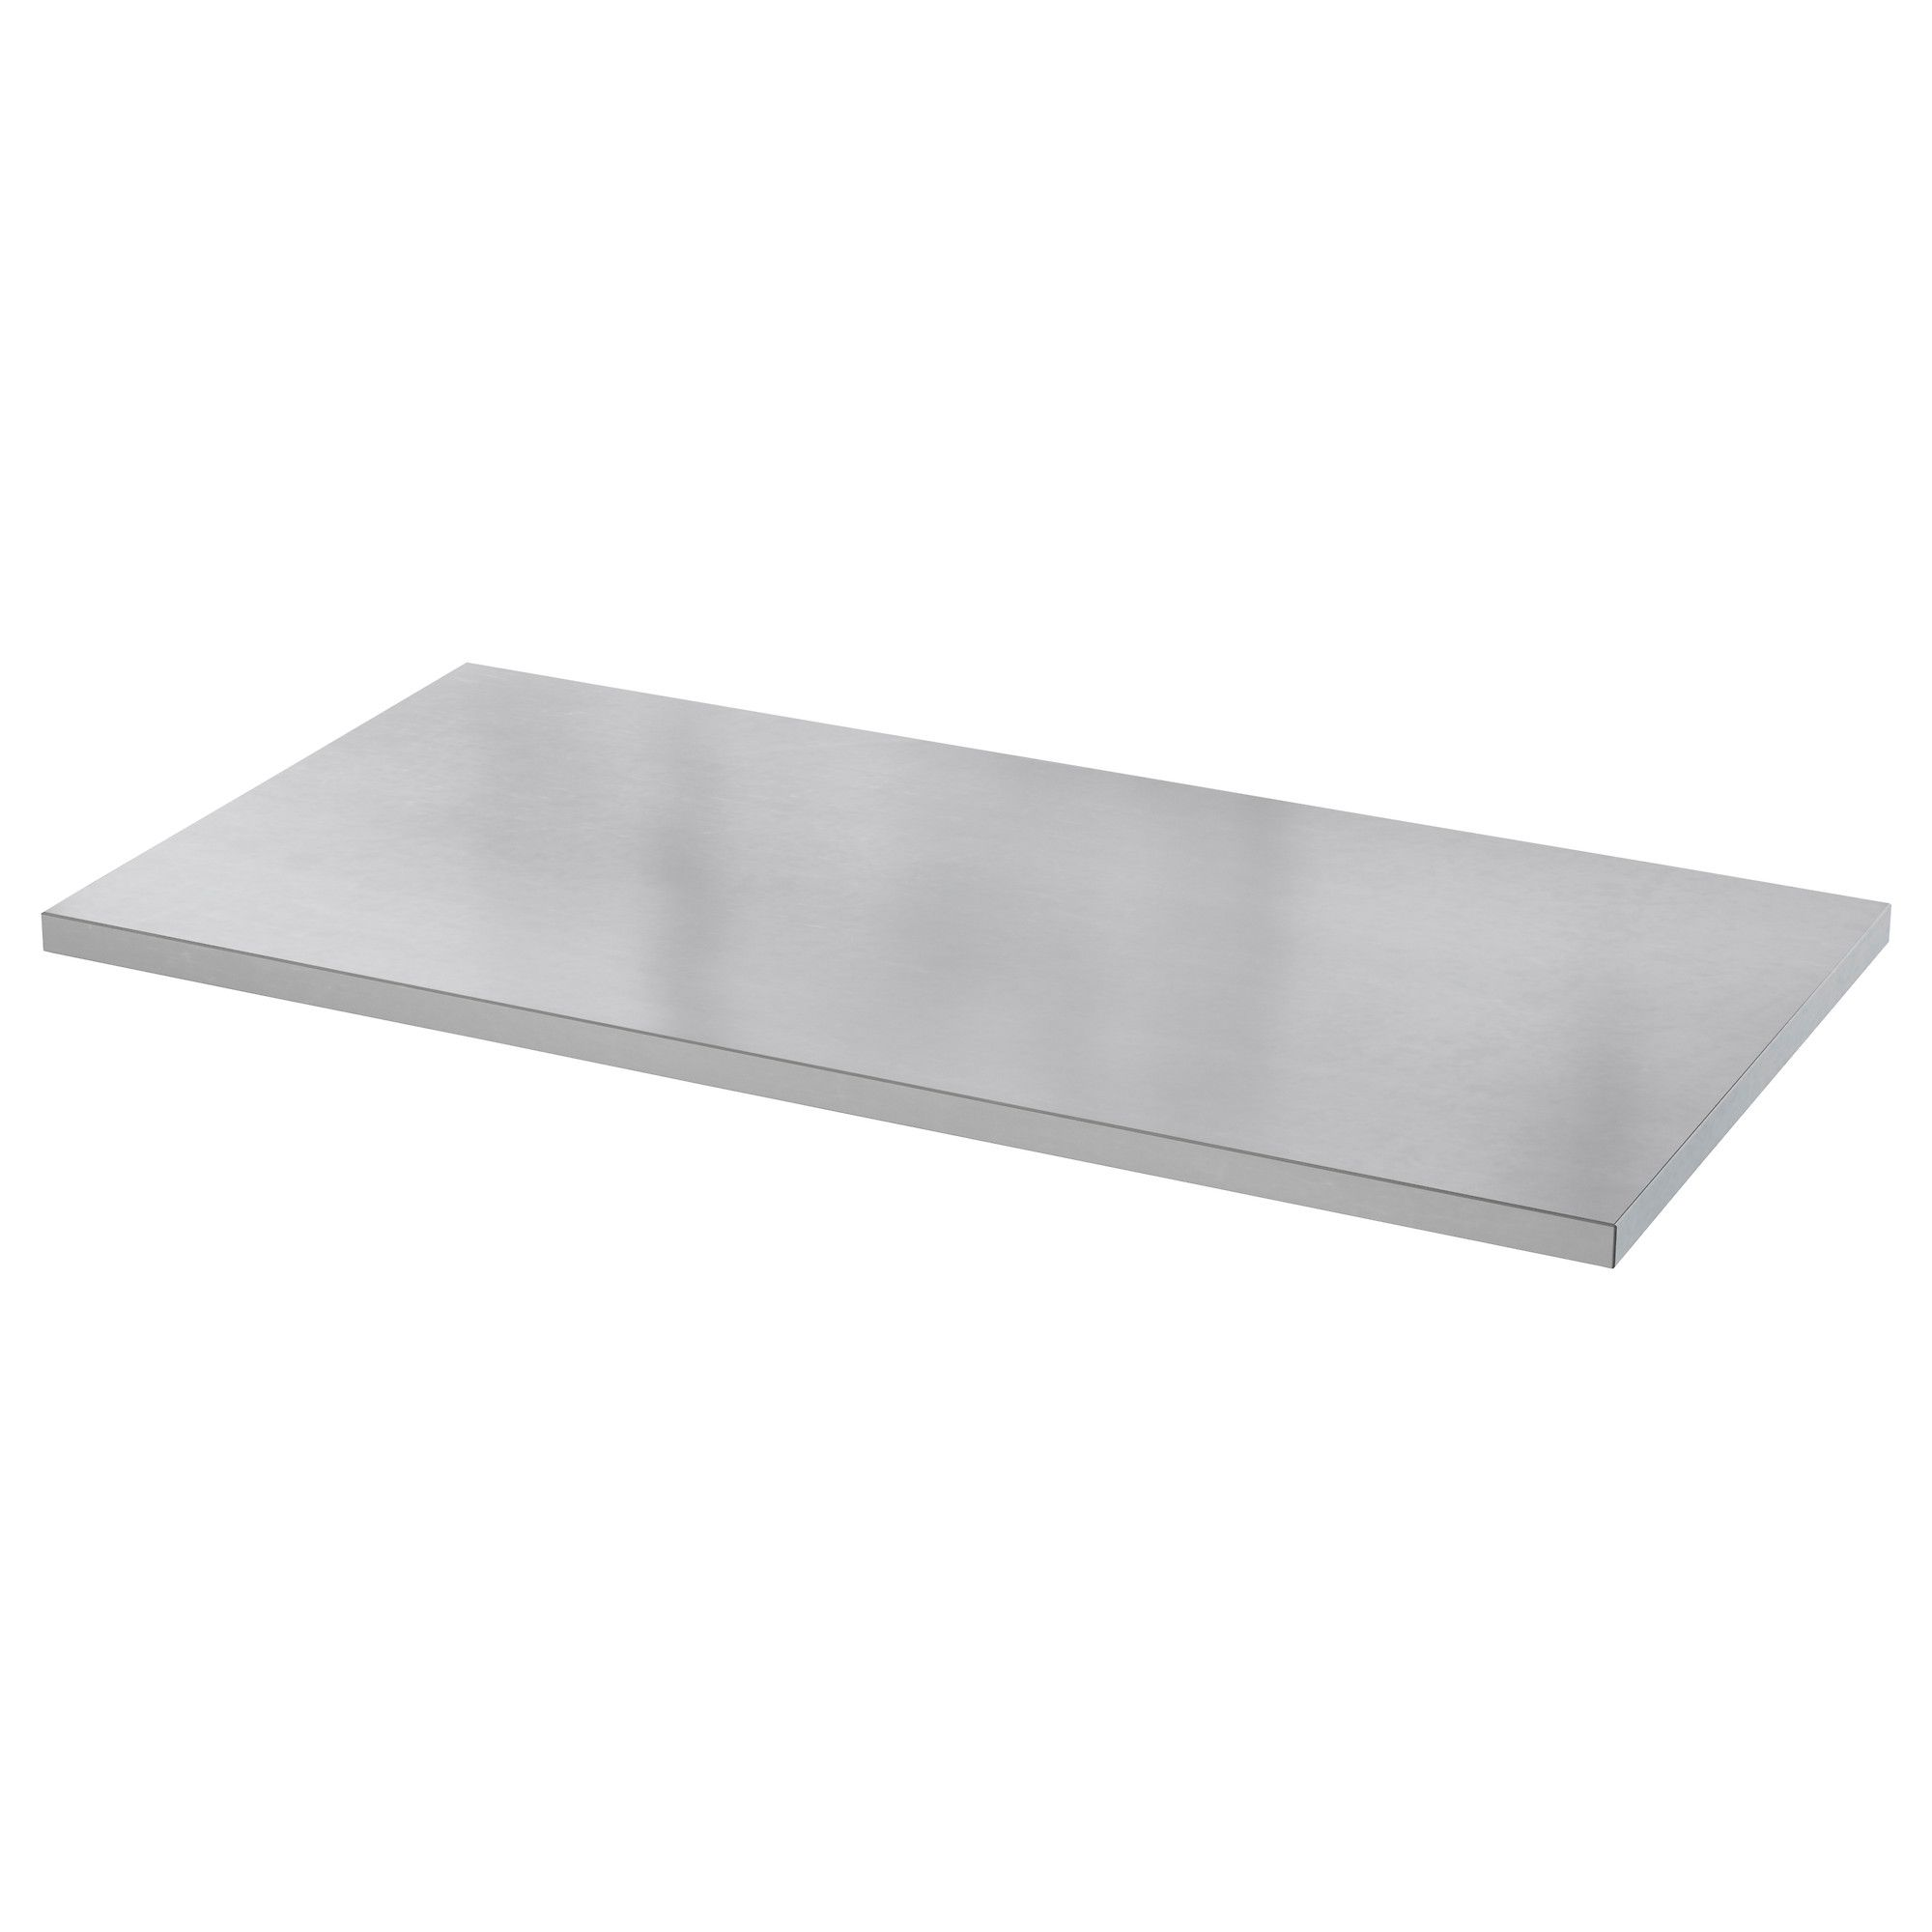 SANFRID Table Top   IKEA Ideal To Be A Wall Feature And A Table Top For